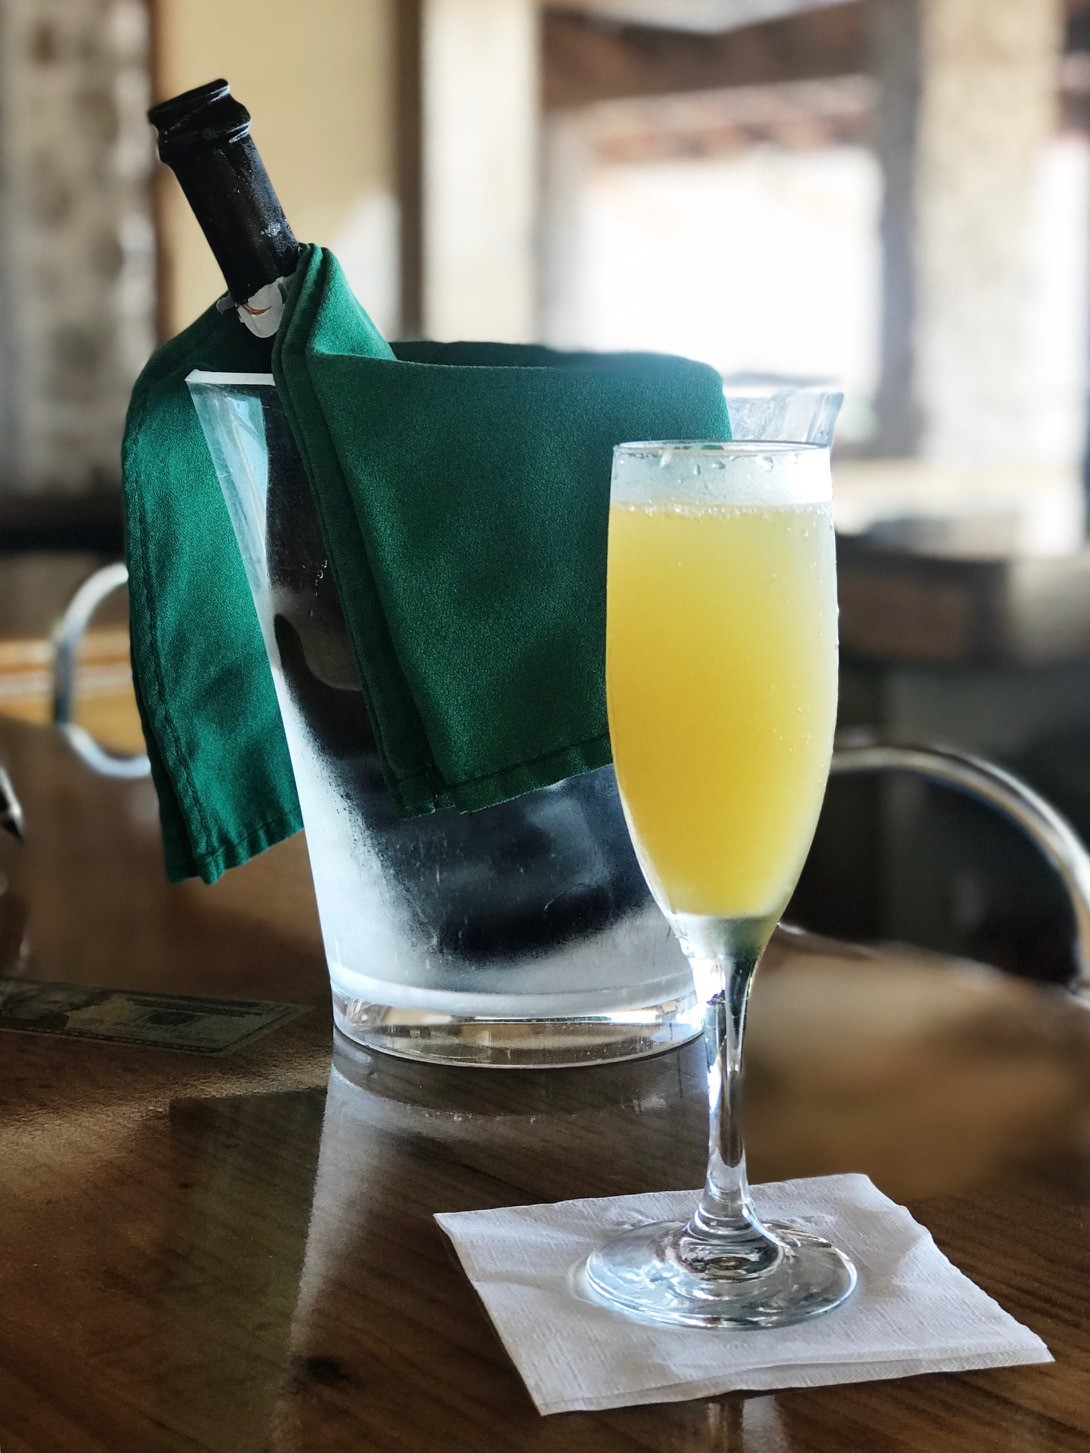 Brunch at the Sugar Mill BVI - Mimosas before sitting down for brunch